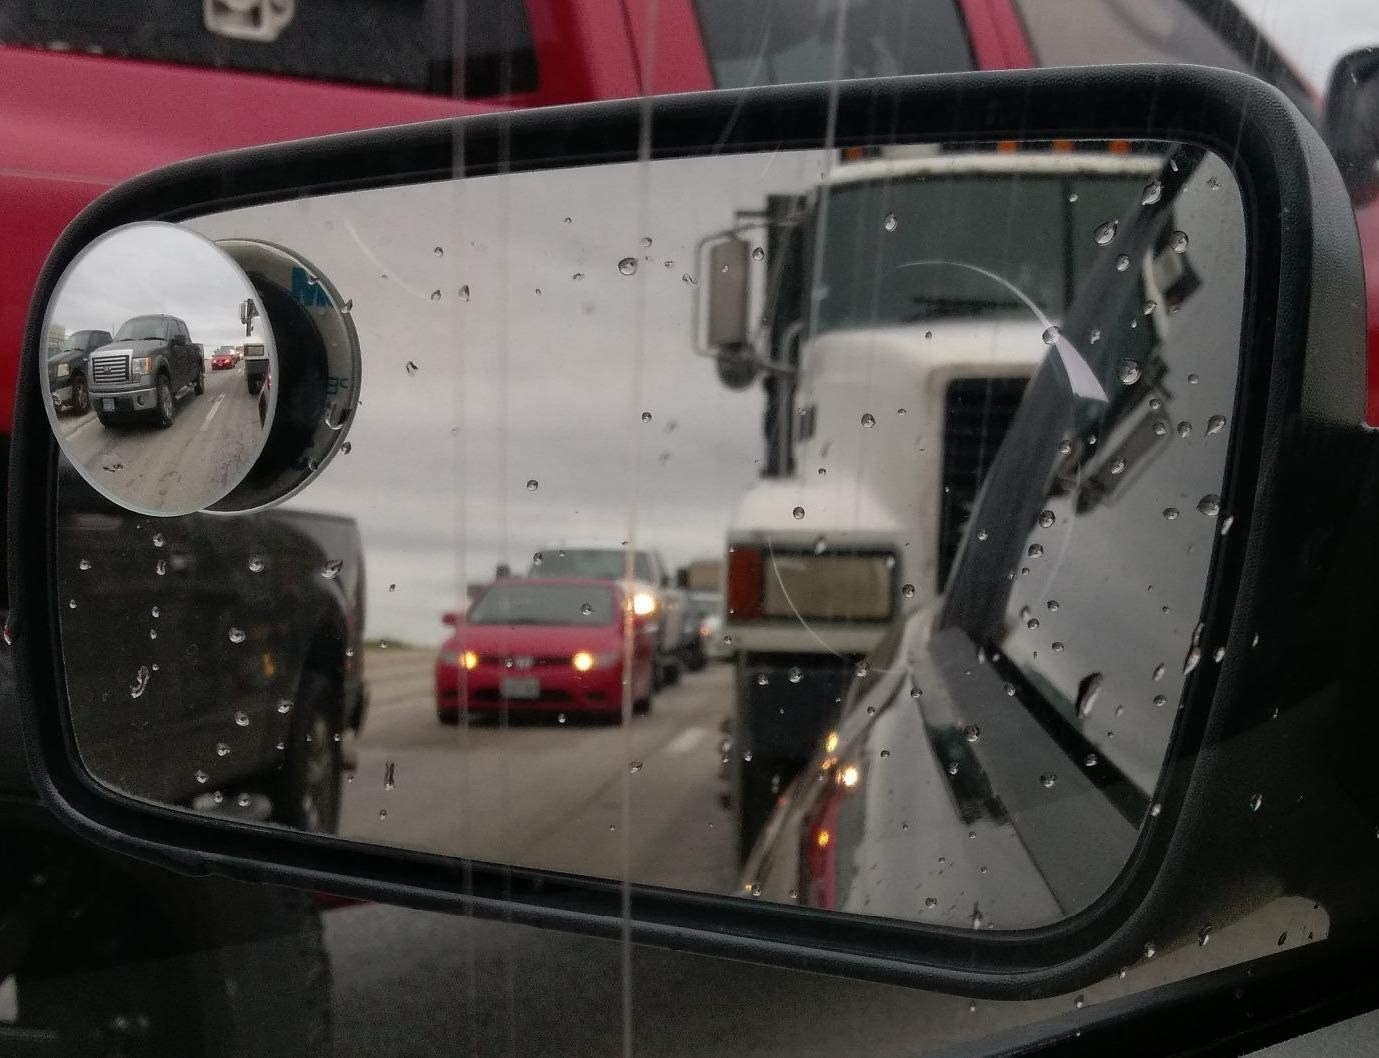 A blind spot mirror showing a wide view of the road on a highway